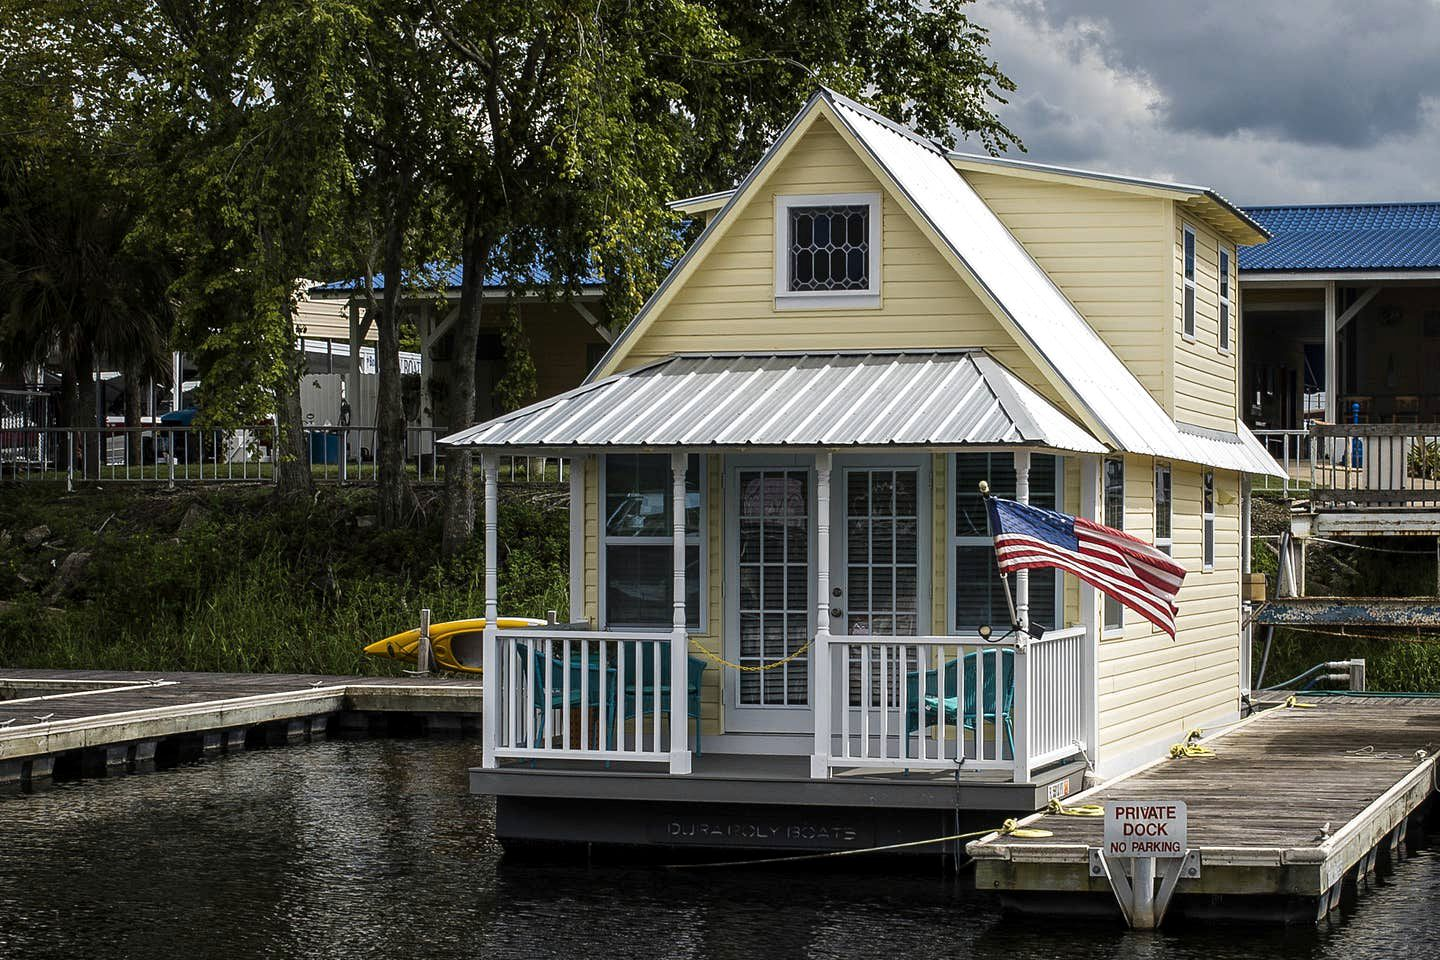 Boats & Floating Homes (Sanford, Florida, United States)